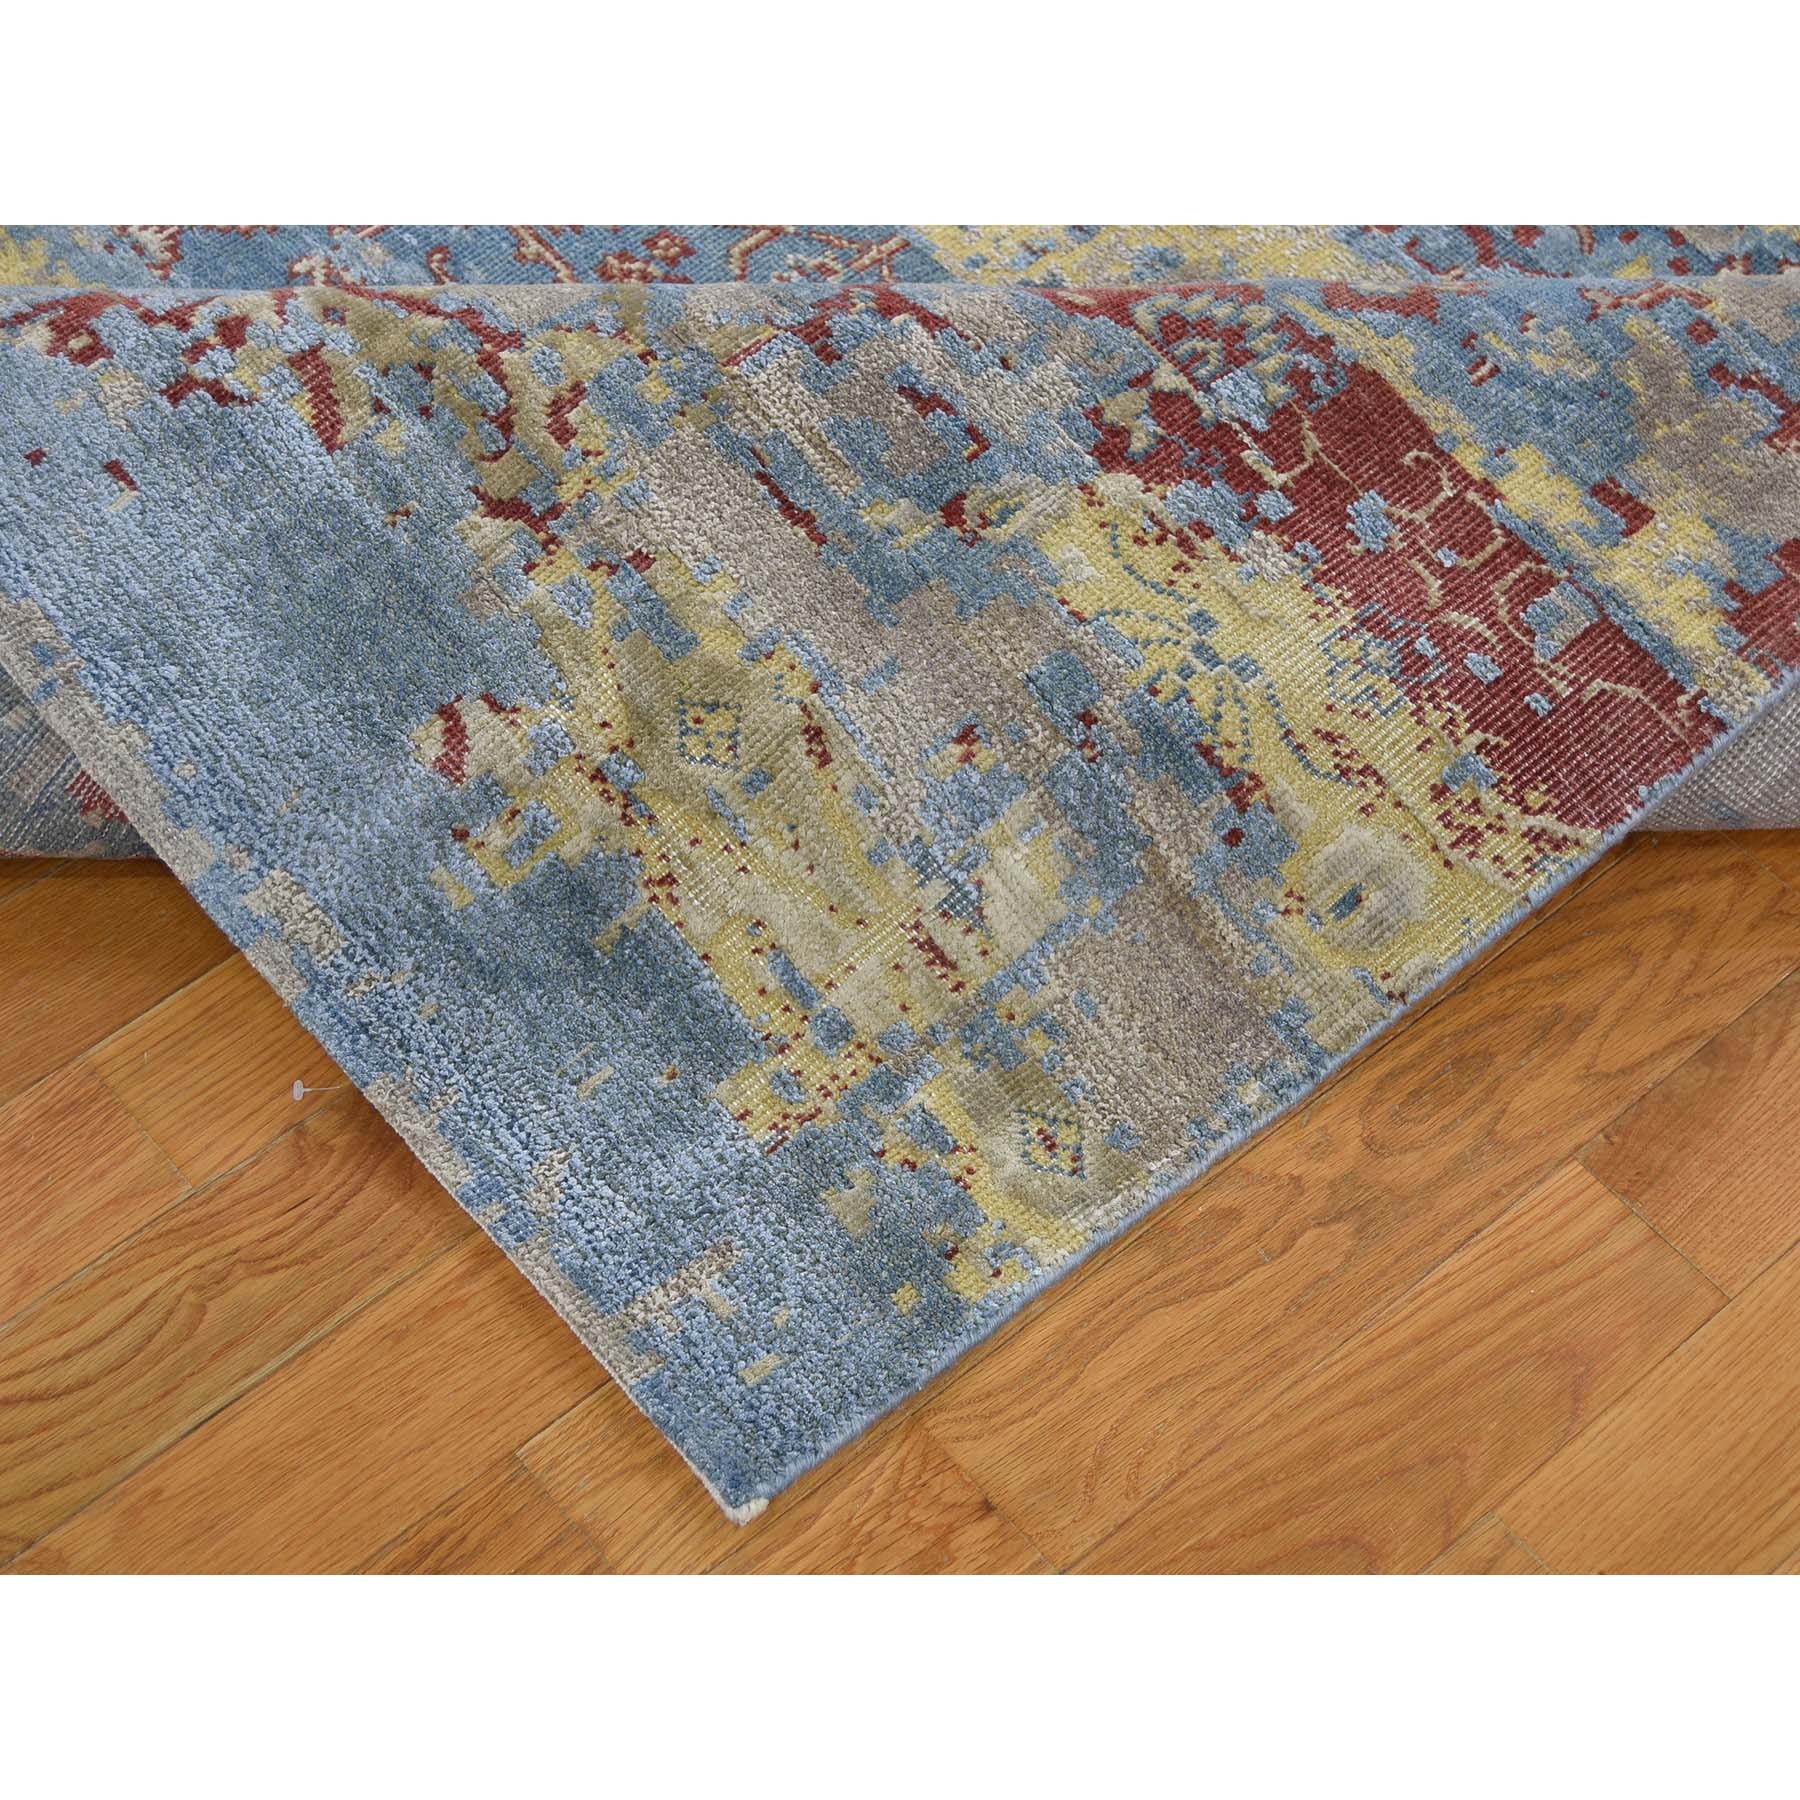 7-8 x9-10  Hand-Knotted Silk With Oxidized Wool Broken Design Rug